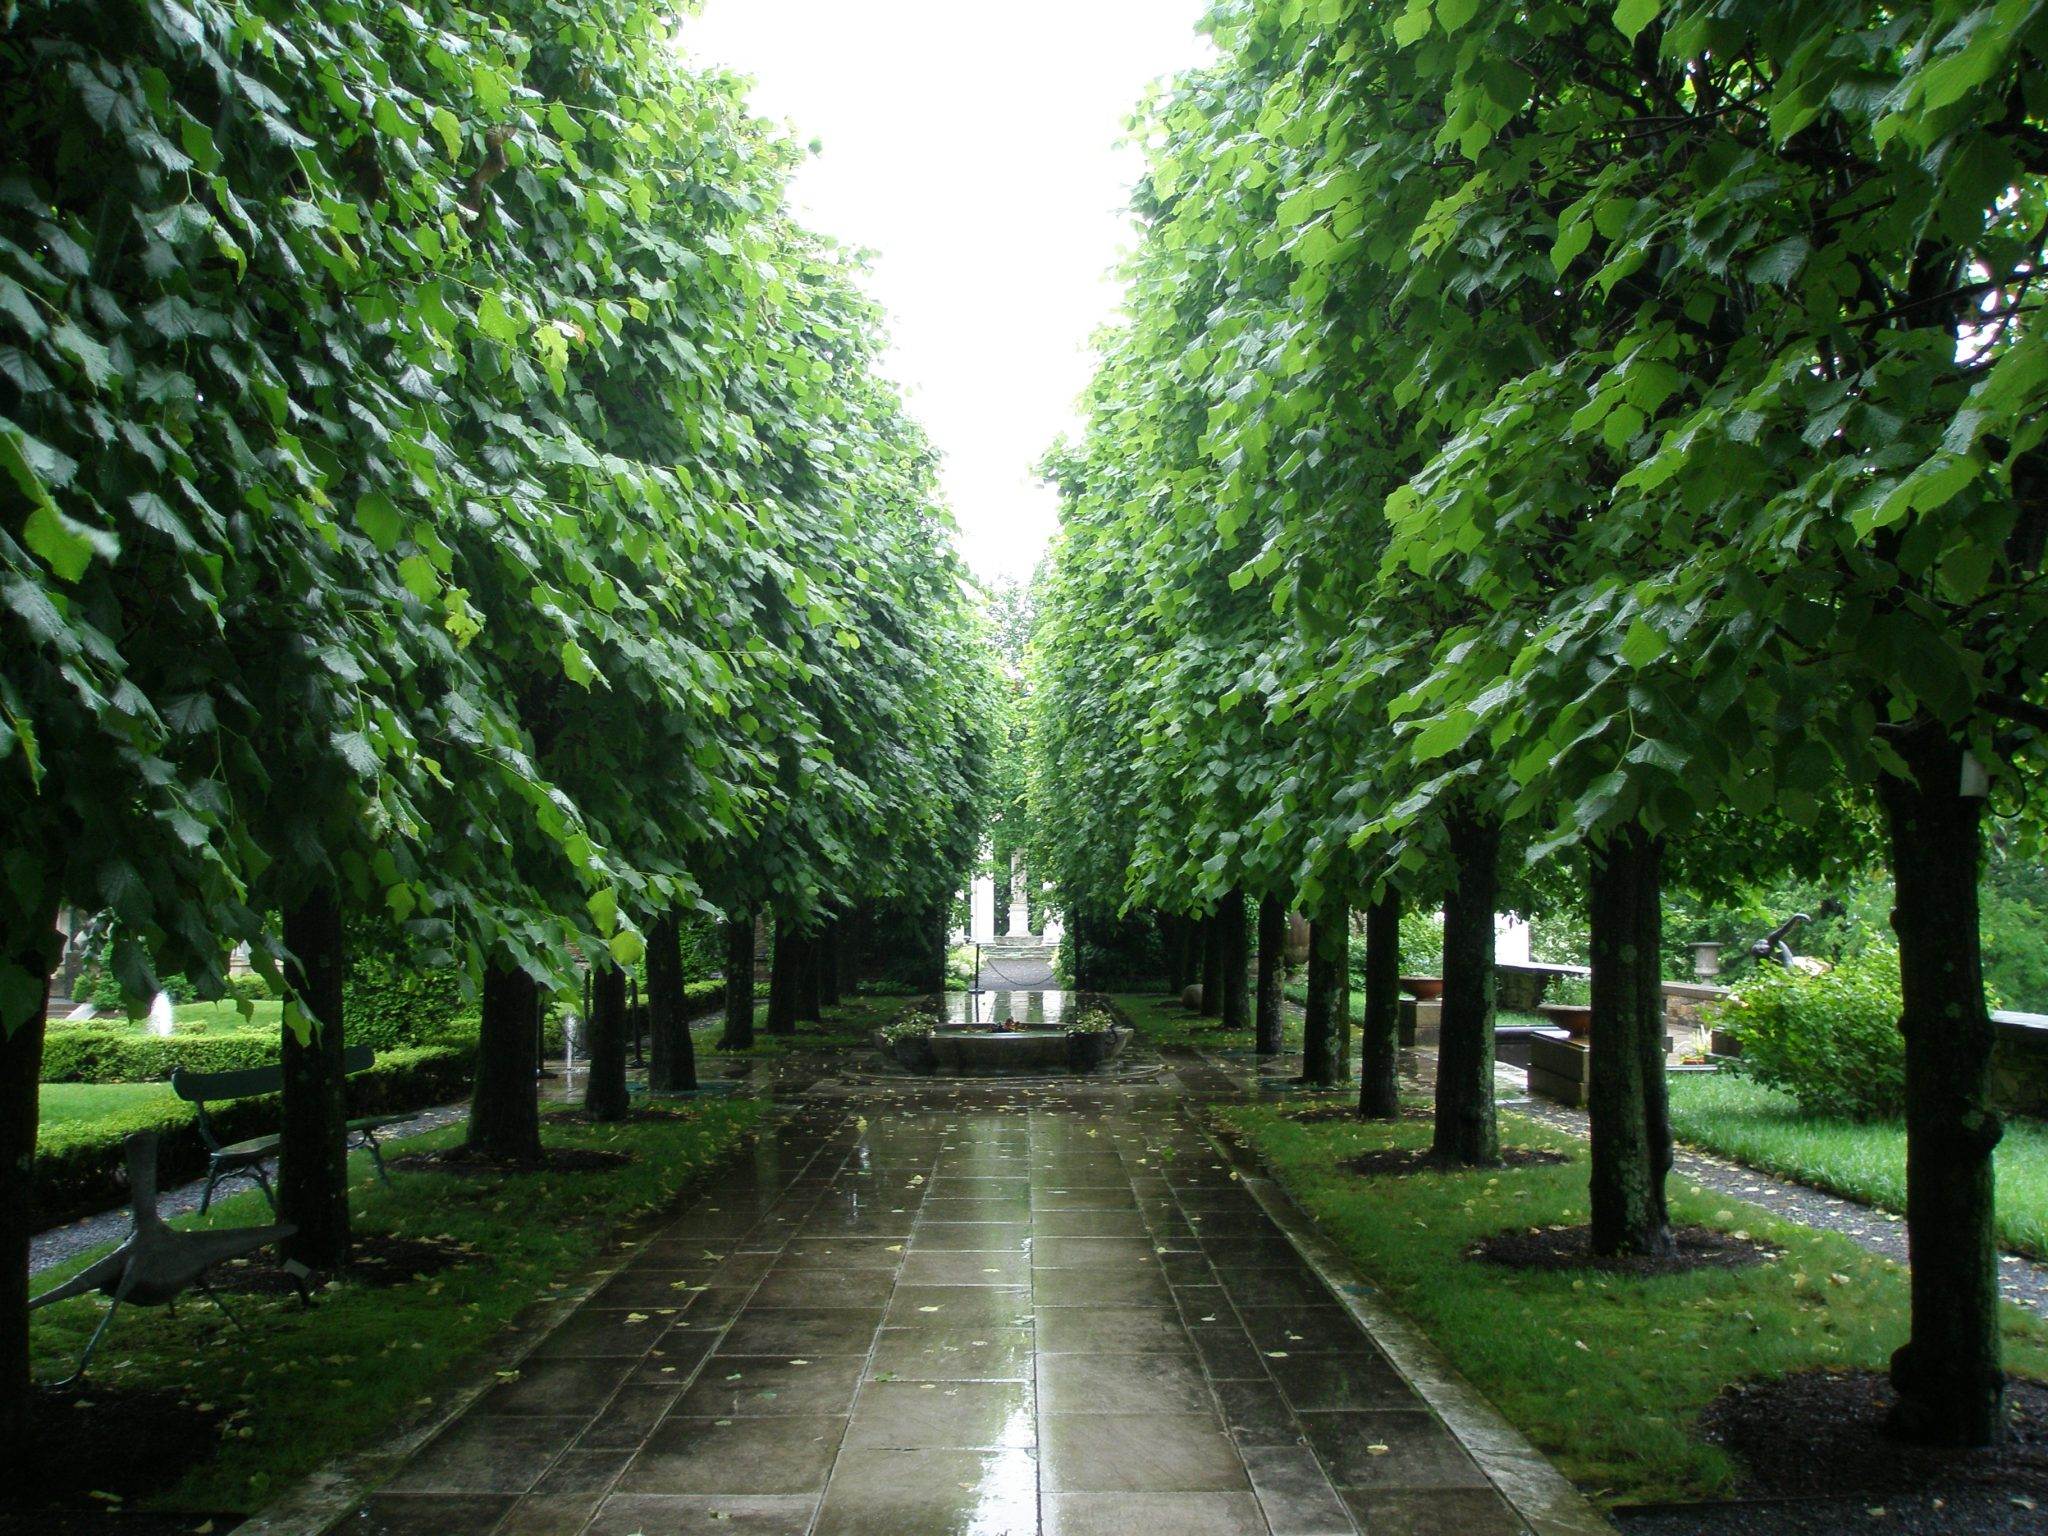 The Linden Allee, which terminates at the Classical Temple/Temple of Venus